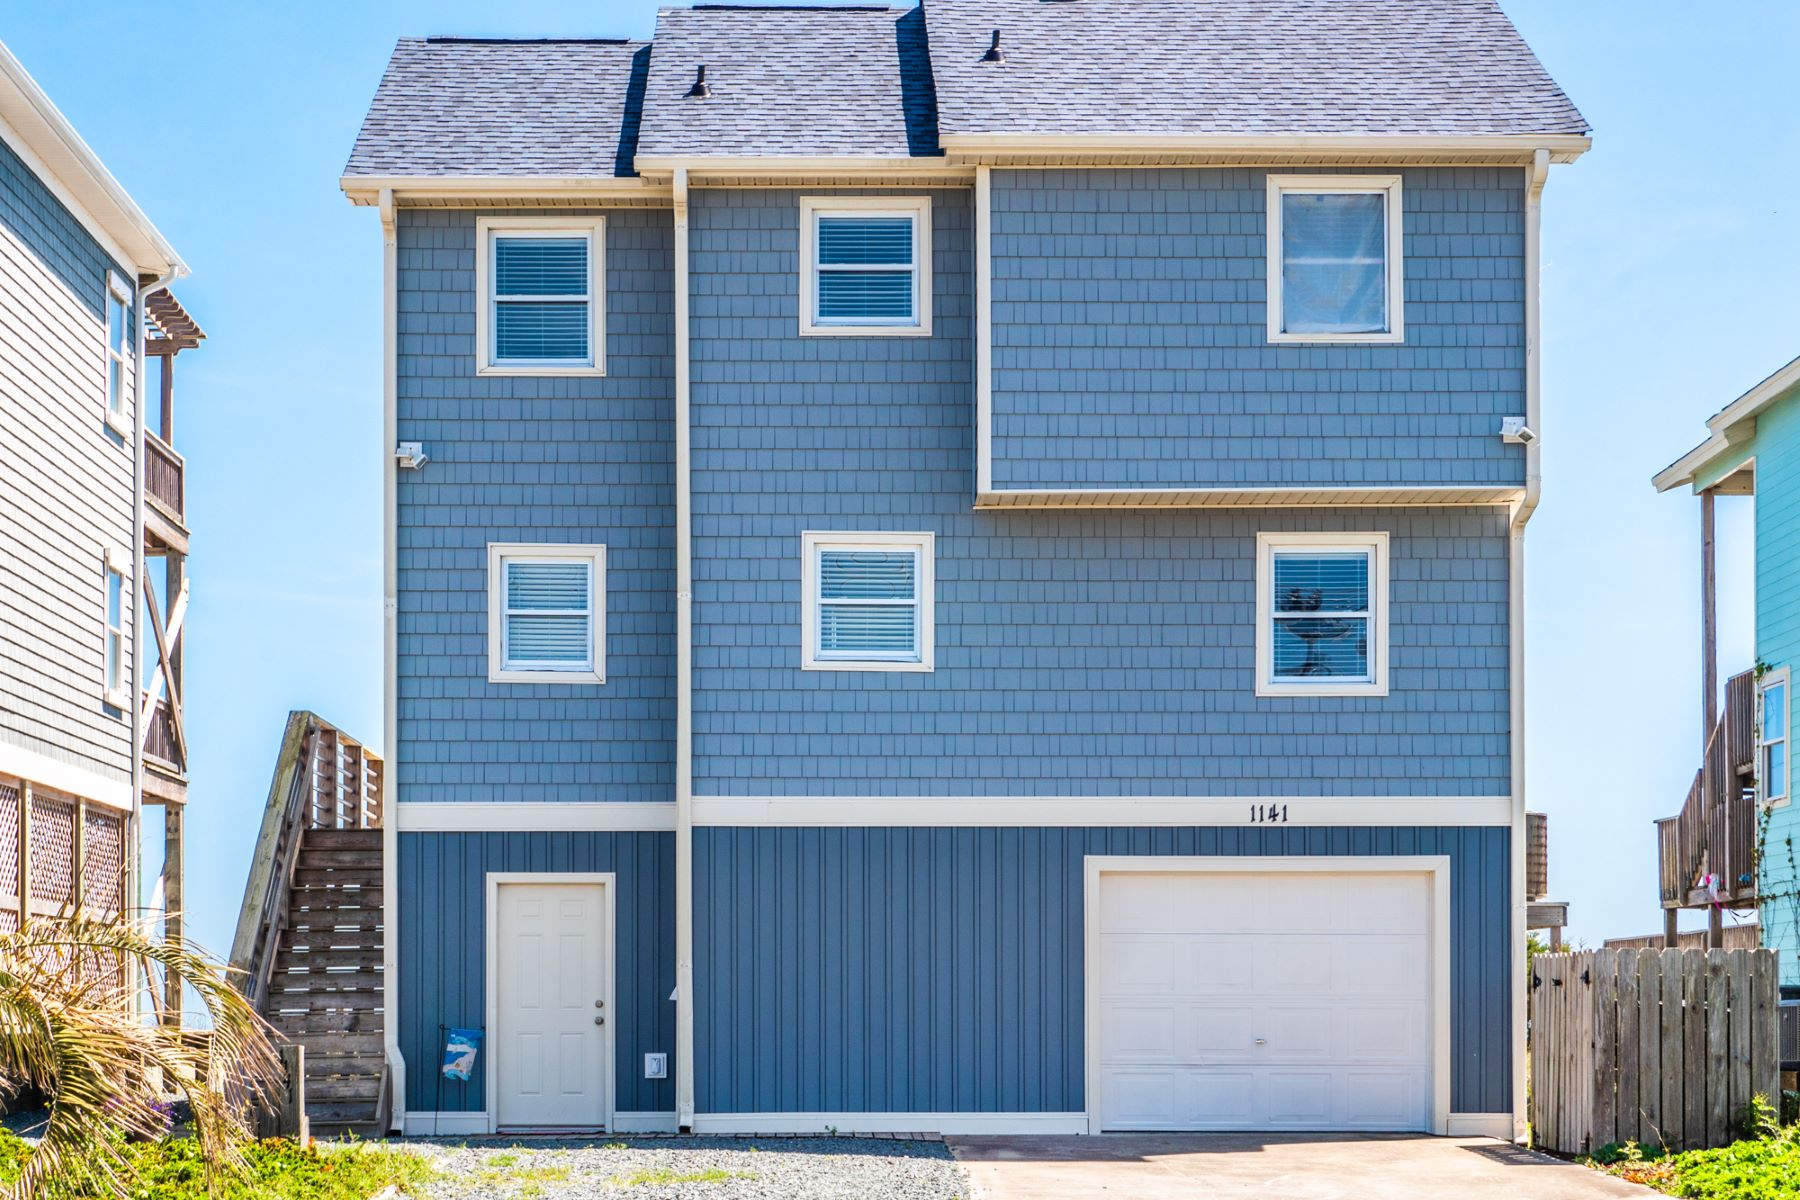 Single Family Home for Active at Freshly Decorated Oceanfront Home 1141 N Anderson Boulevard Topsail Beach, North Carolina 28445 United States